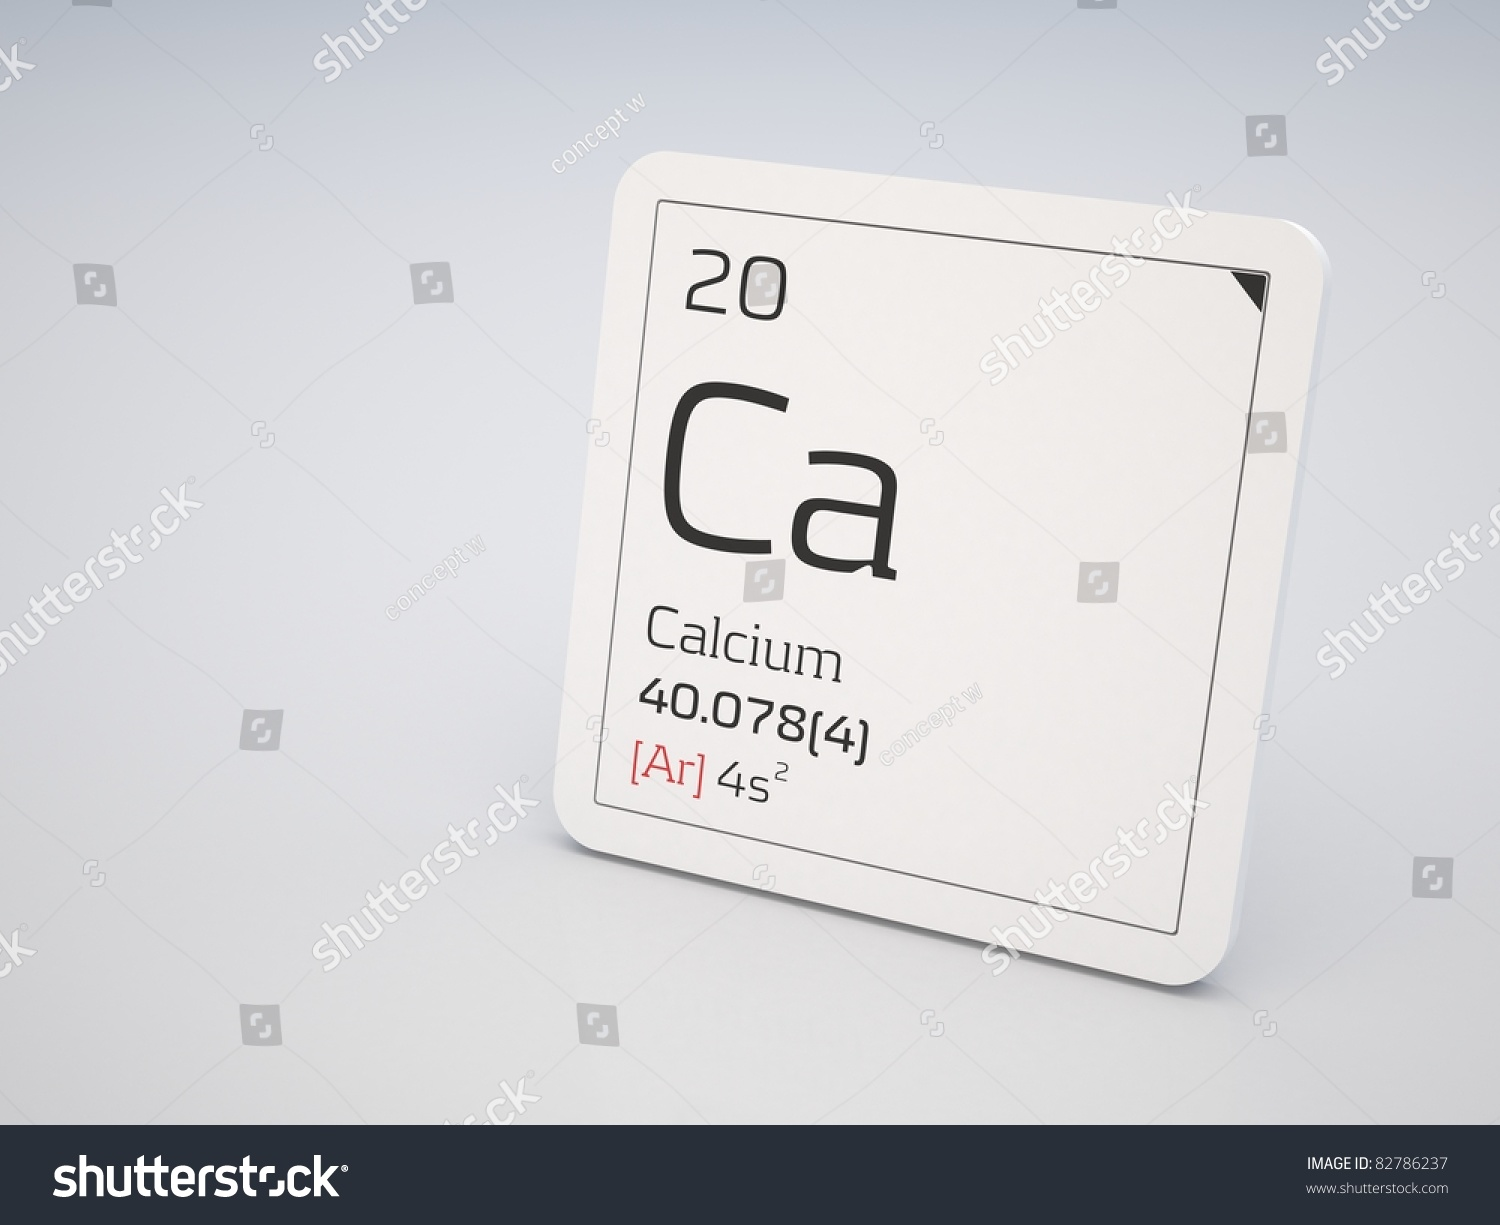 Is calcium on the periodic table gallery periodic table images image gallery of calcium on the periodic table calcium periodic table gifts merchandise calcium periodic table gamestrikefo Choice Image